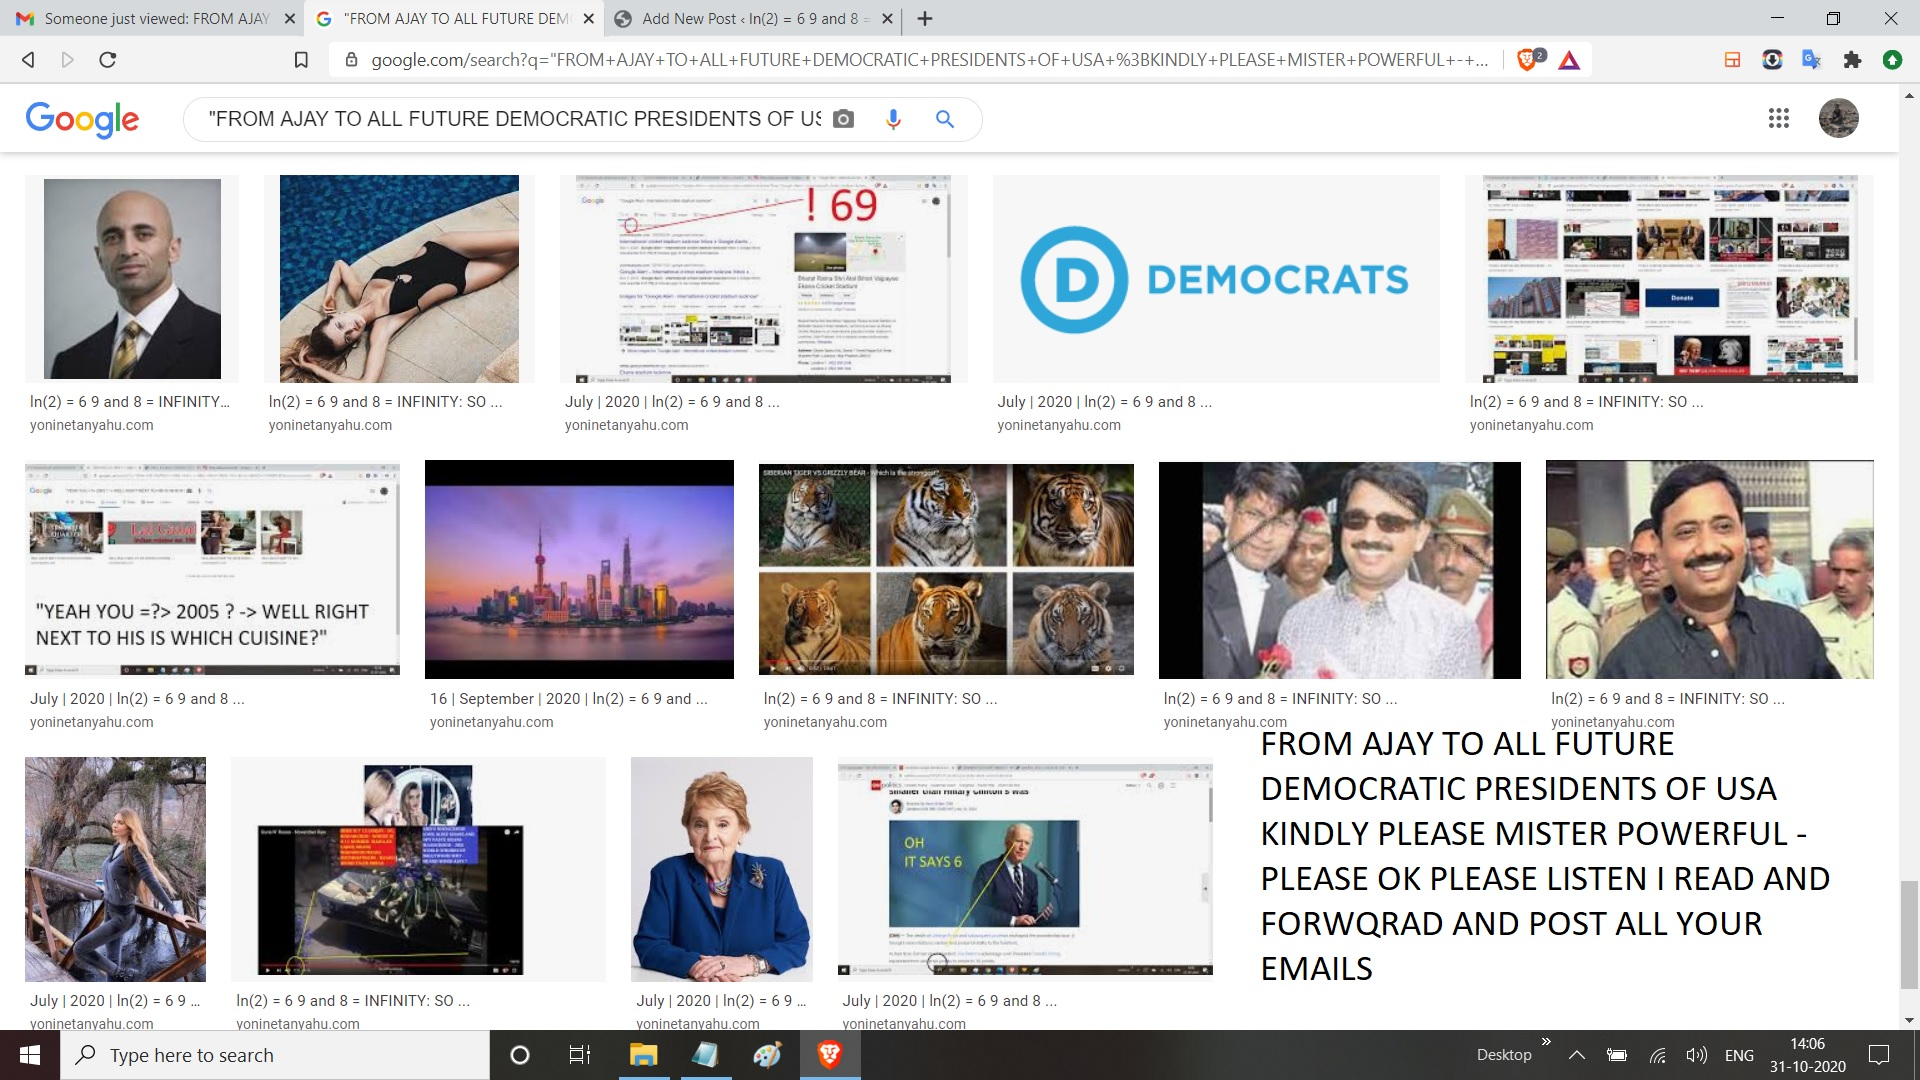 FROM AJAY TO ALL FUTURE DEMOCRATIC PRESIDENTS OF USA KINDLY PLEASE MISTER POWERFUL - PLEASE OK PLEASE LISTEN I READ AND FORWQRAD AND POST ALL YOUR EMAILS